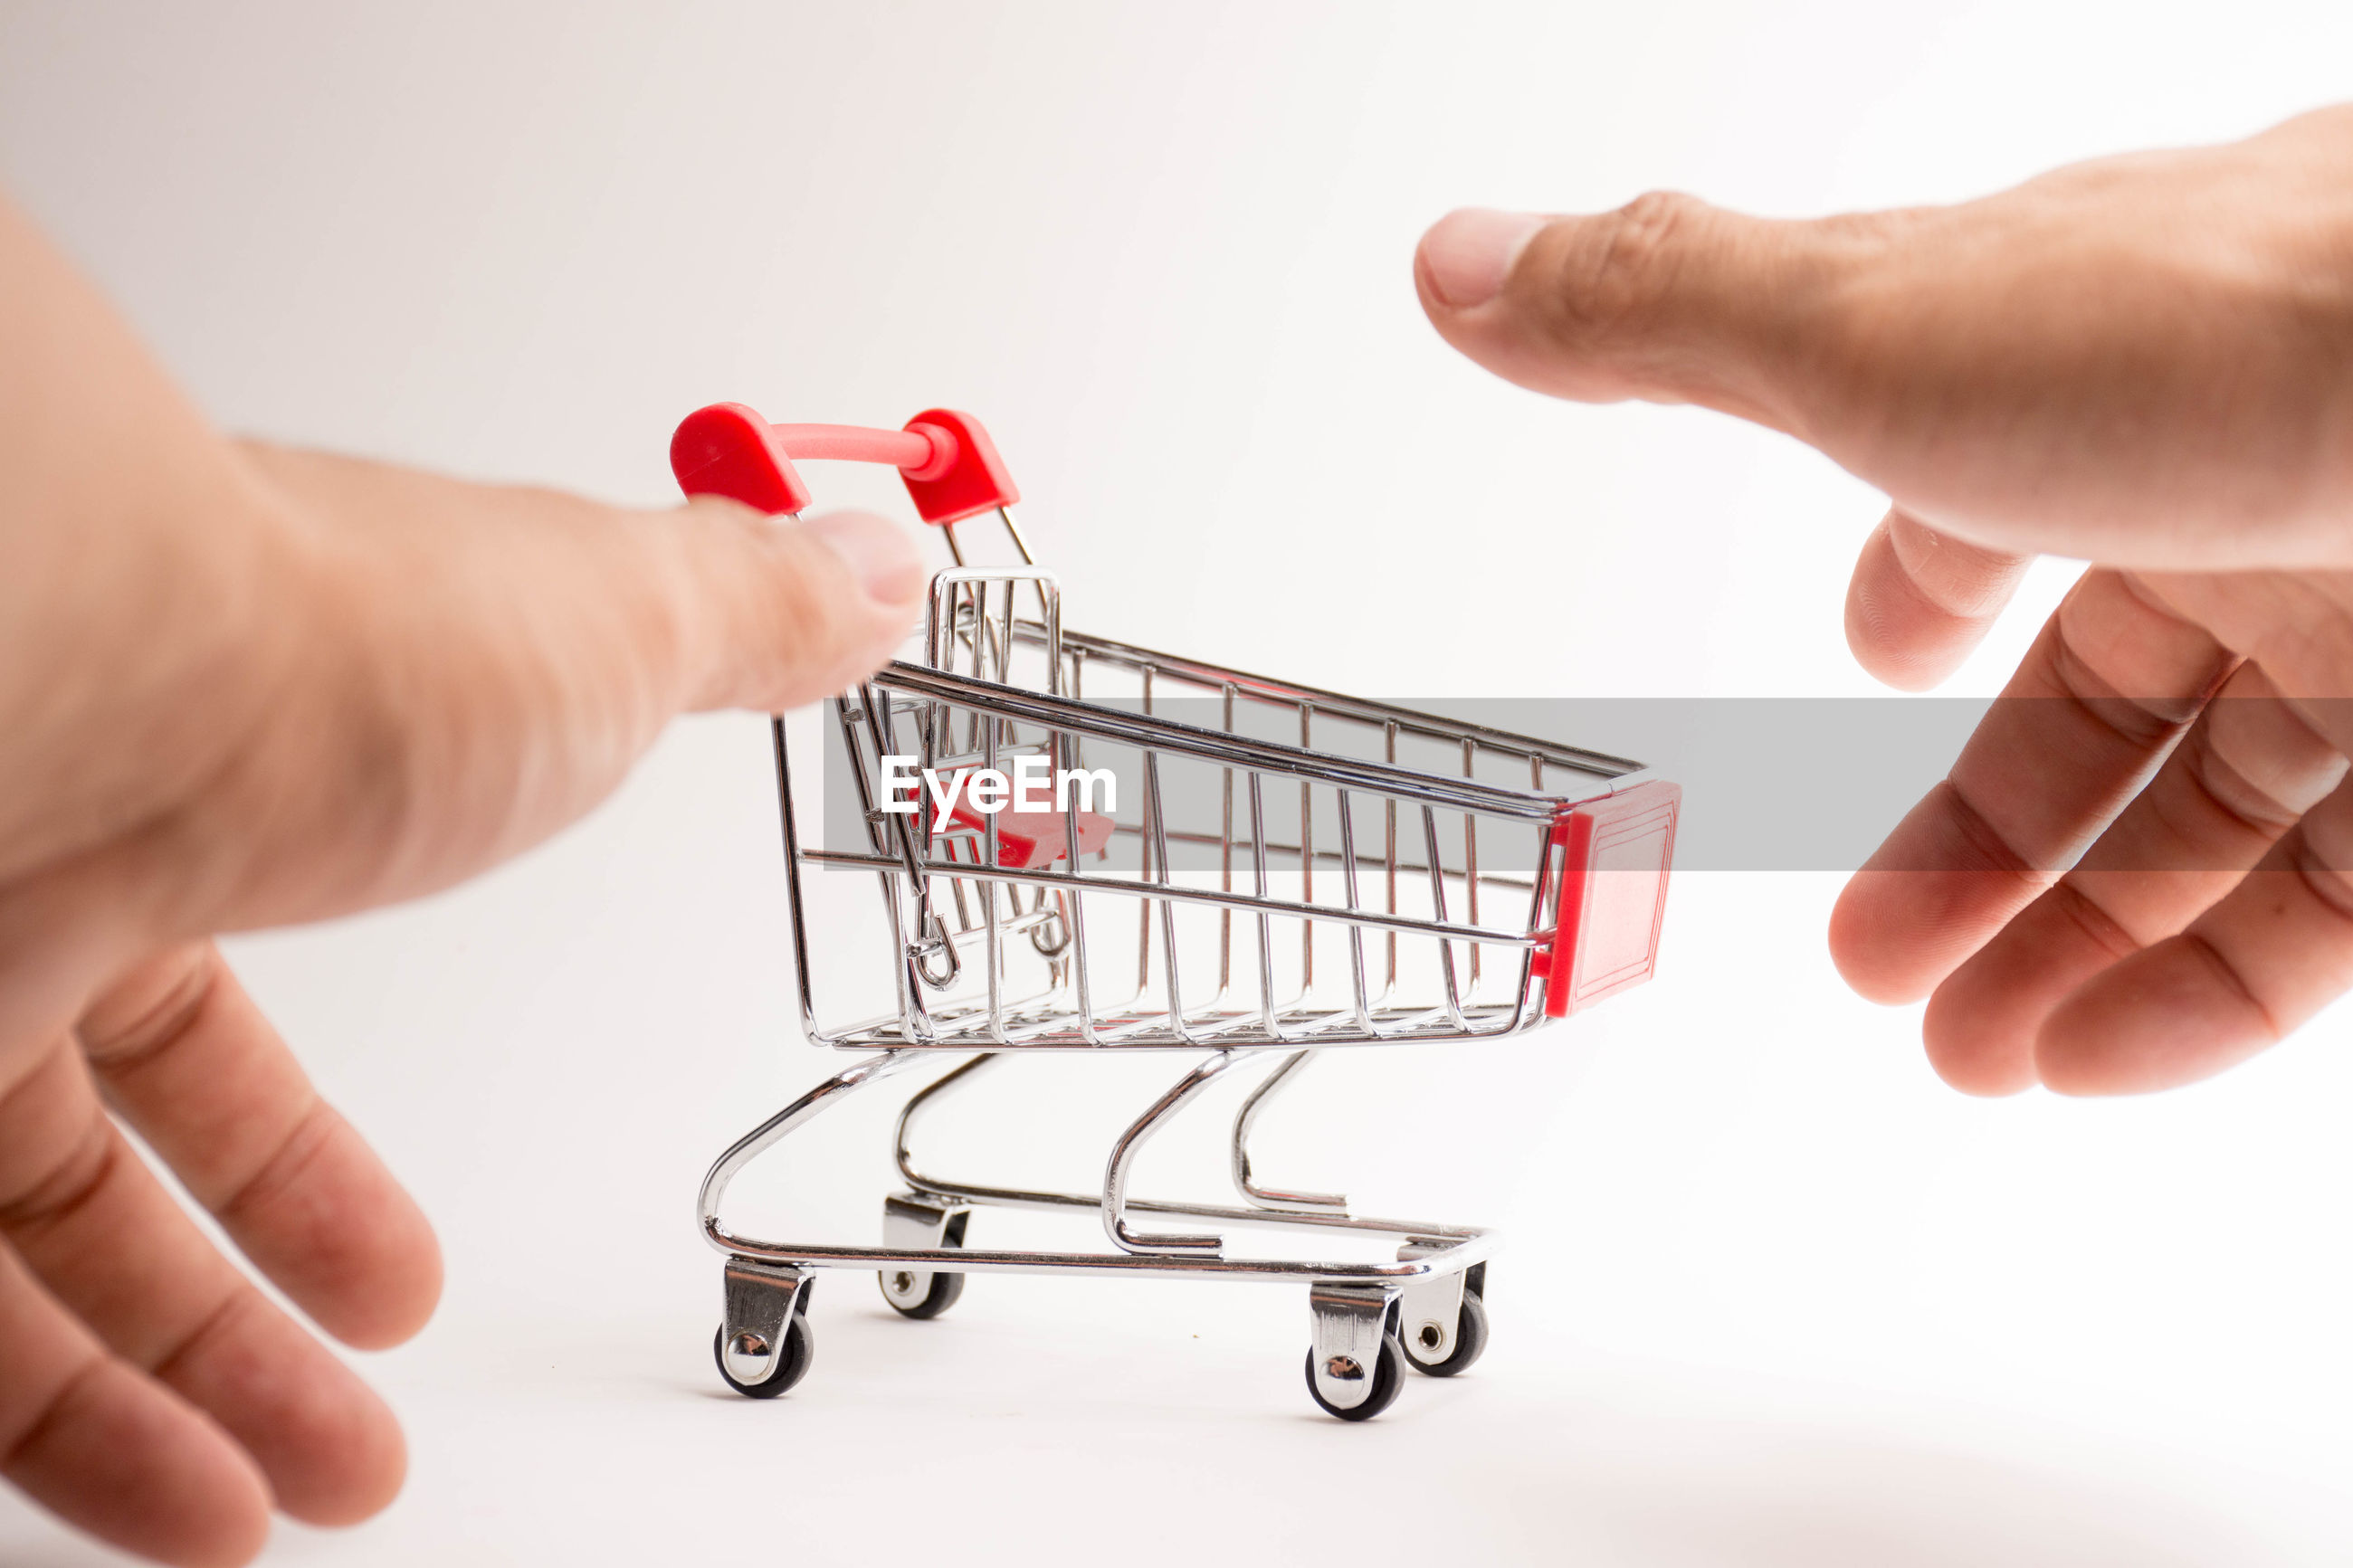 Cropped hands by toy shopping cart on white background